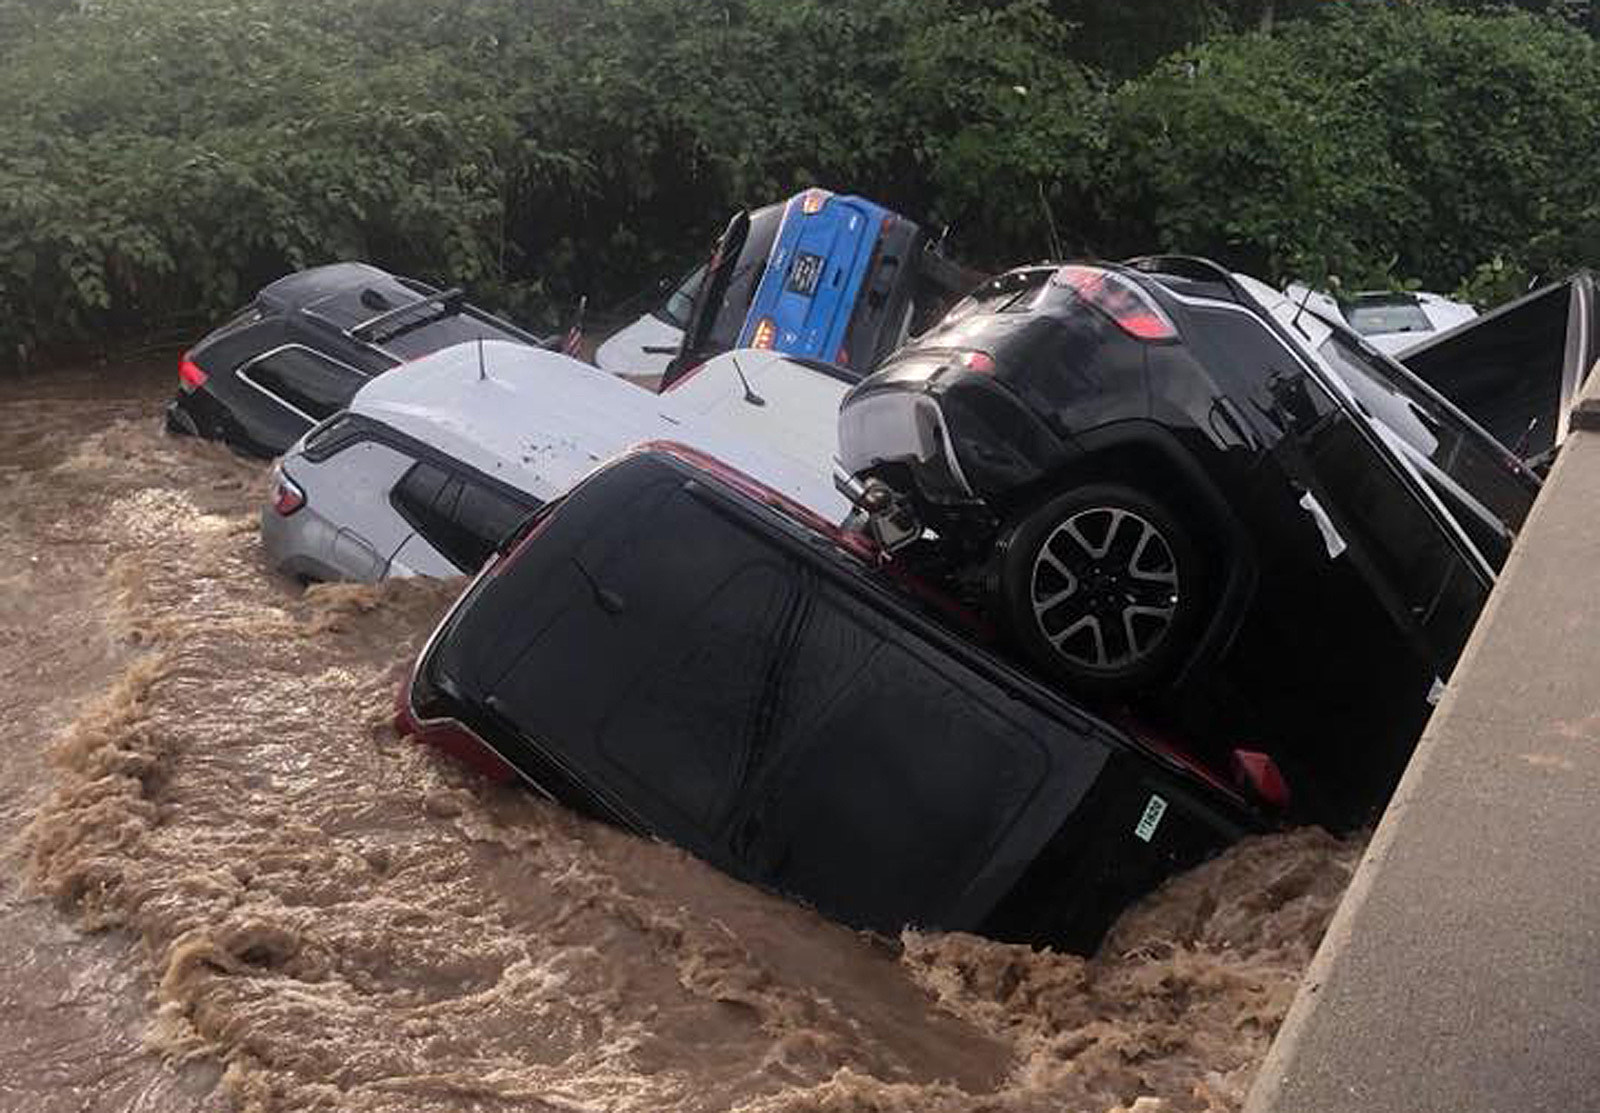 flood washes away cars — why is mayor blaming dealership?